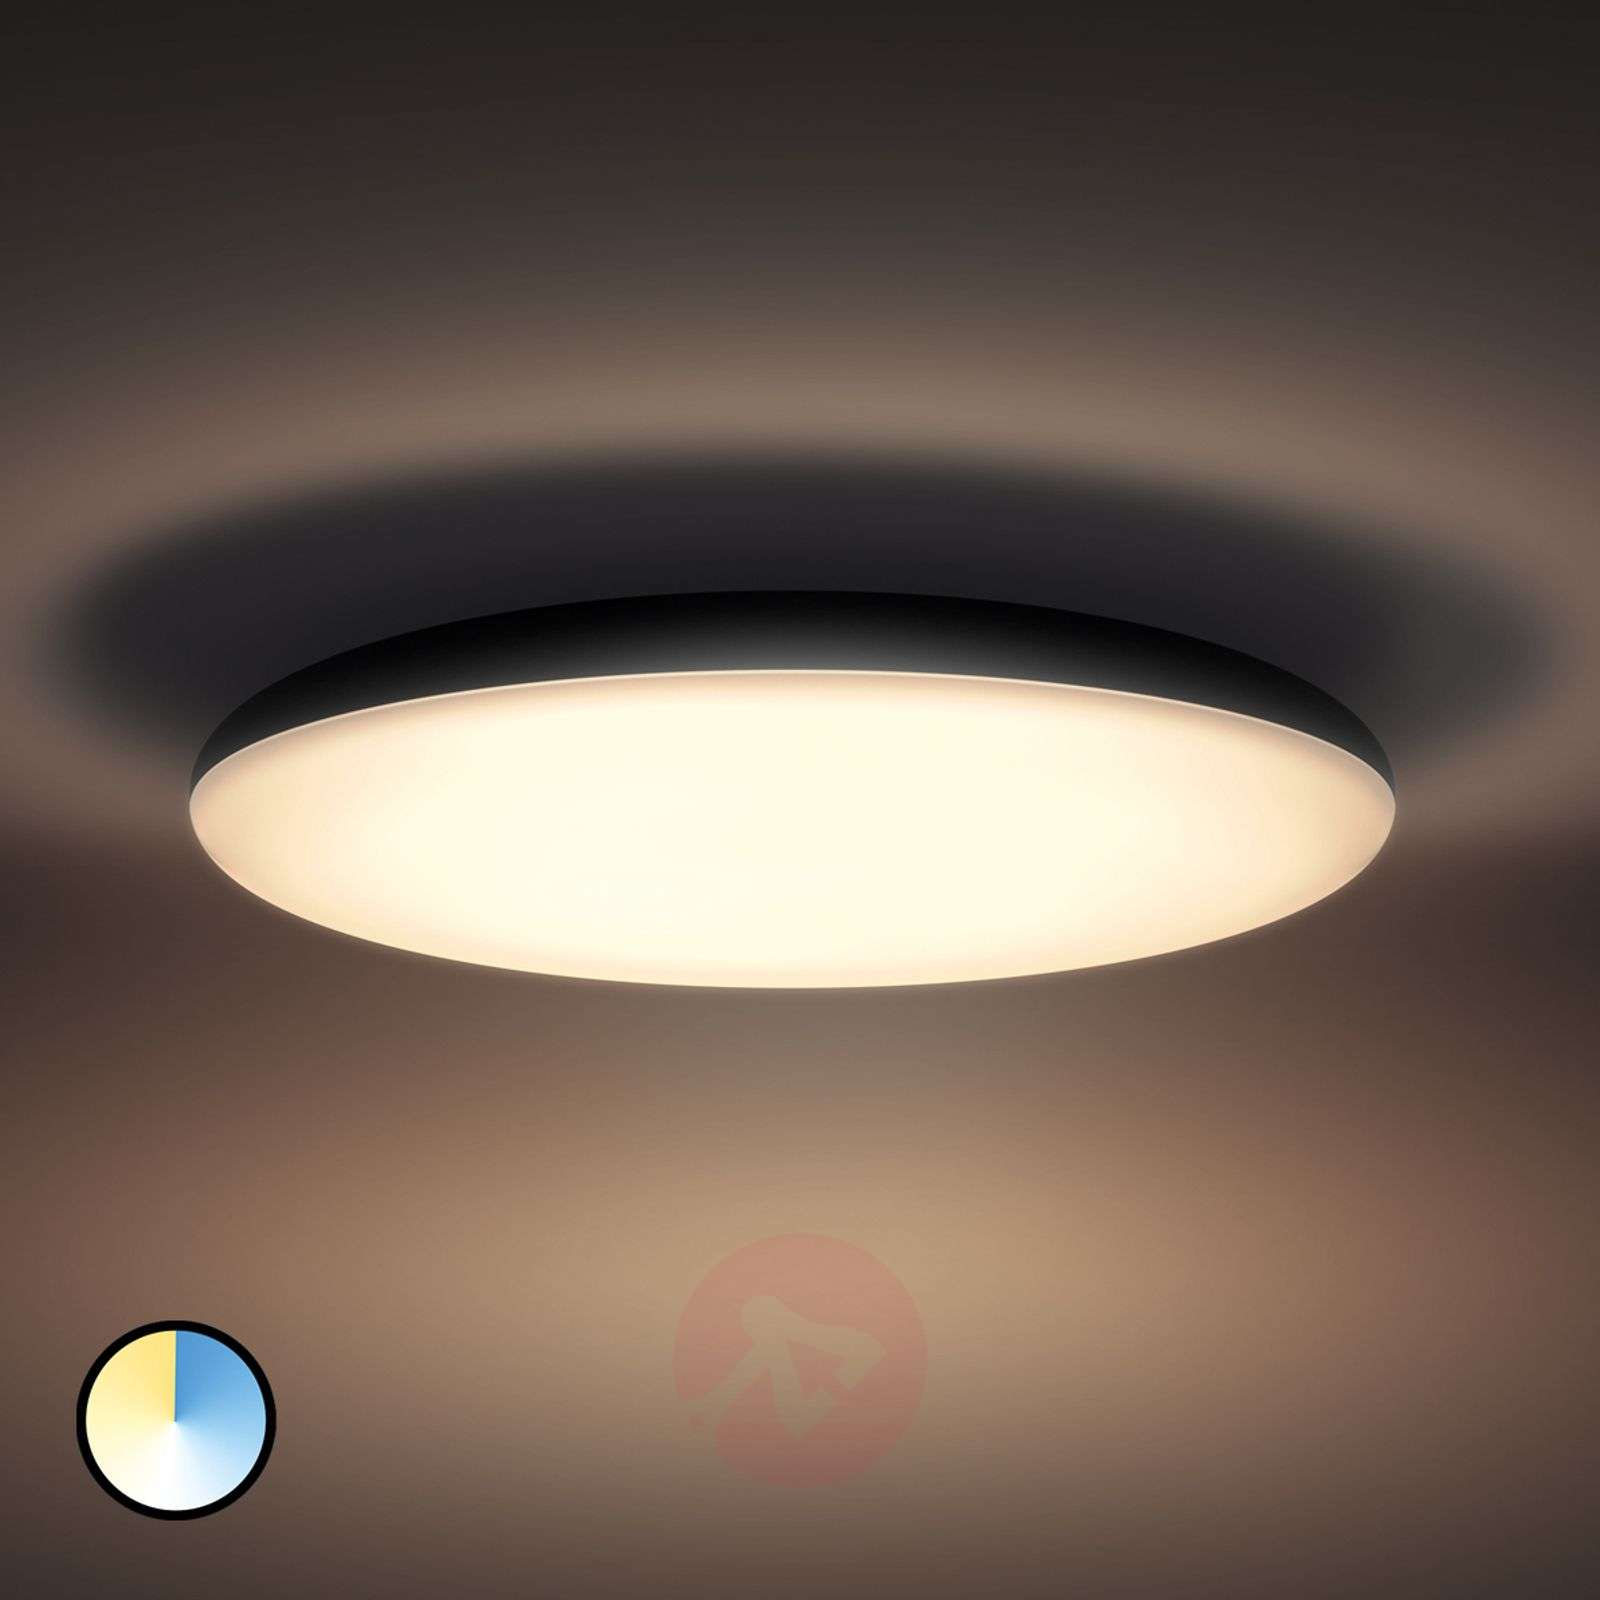 Philips hue led ceiling light cher with dimmer 7532056 01